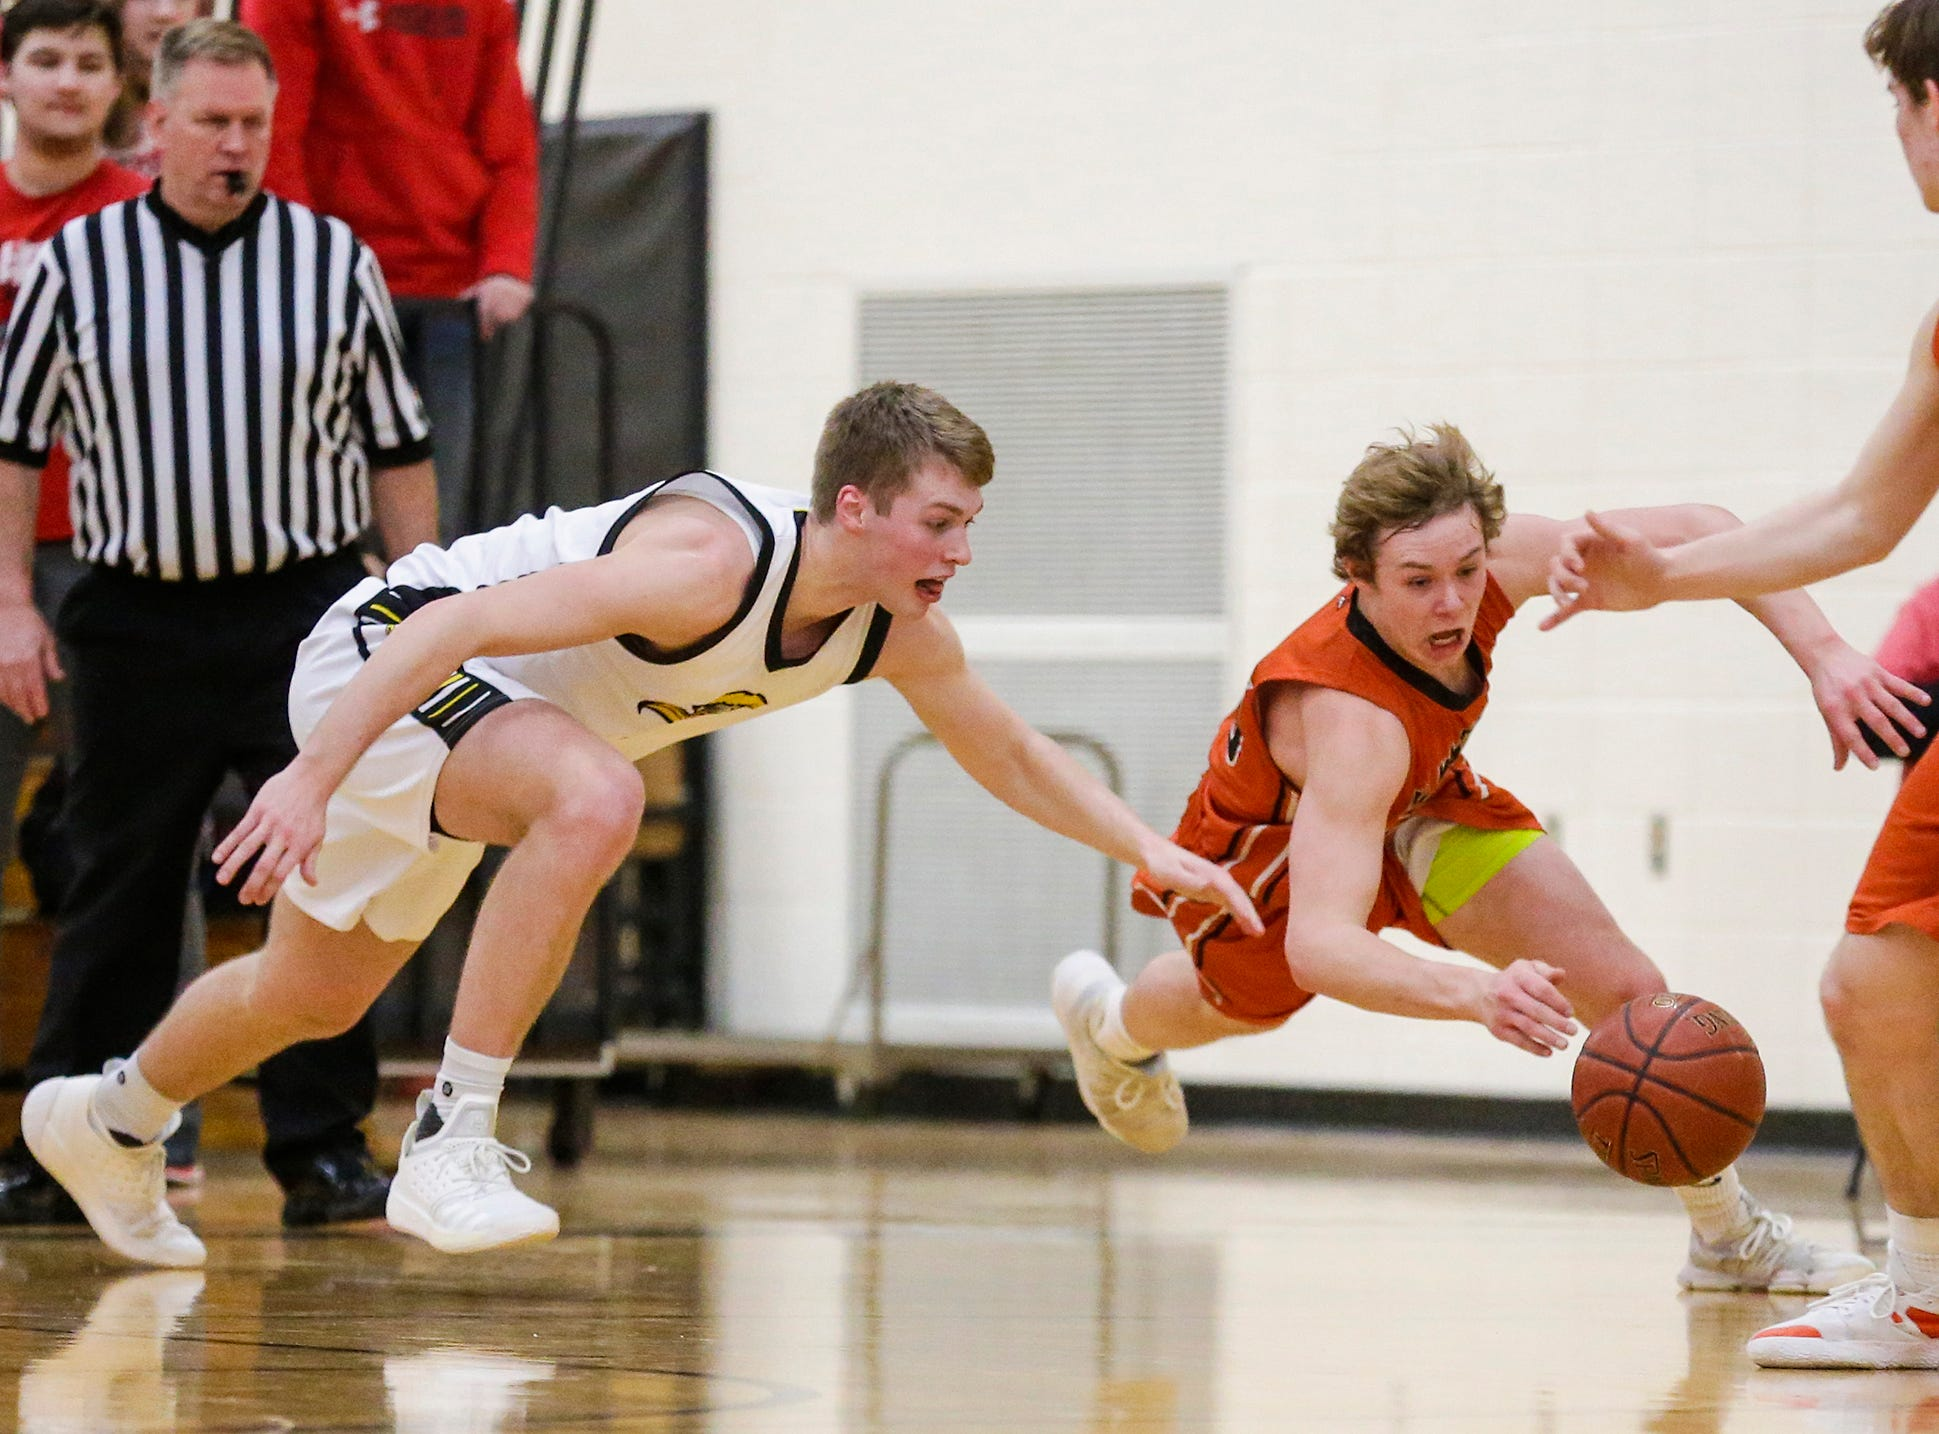 Waupun High School boys basketball's Marcus Domask (1) and Plymouth High School's Aiden Reilly (25) go after a loose ball during their game Friday, February 15, 2019 in Waupun. Doug Raflik/USA TODAY NETWORK-Wisconsin